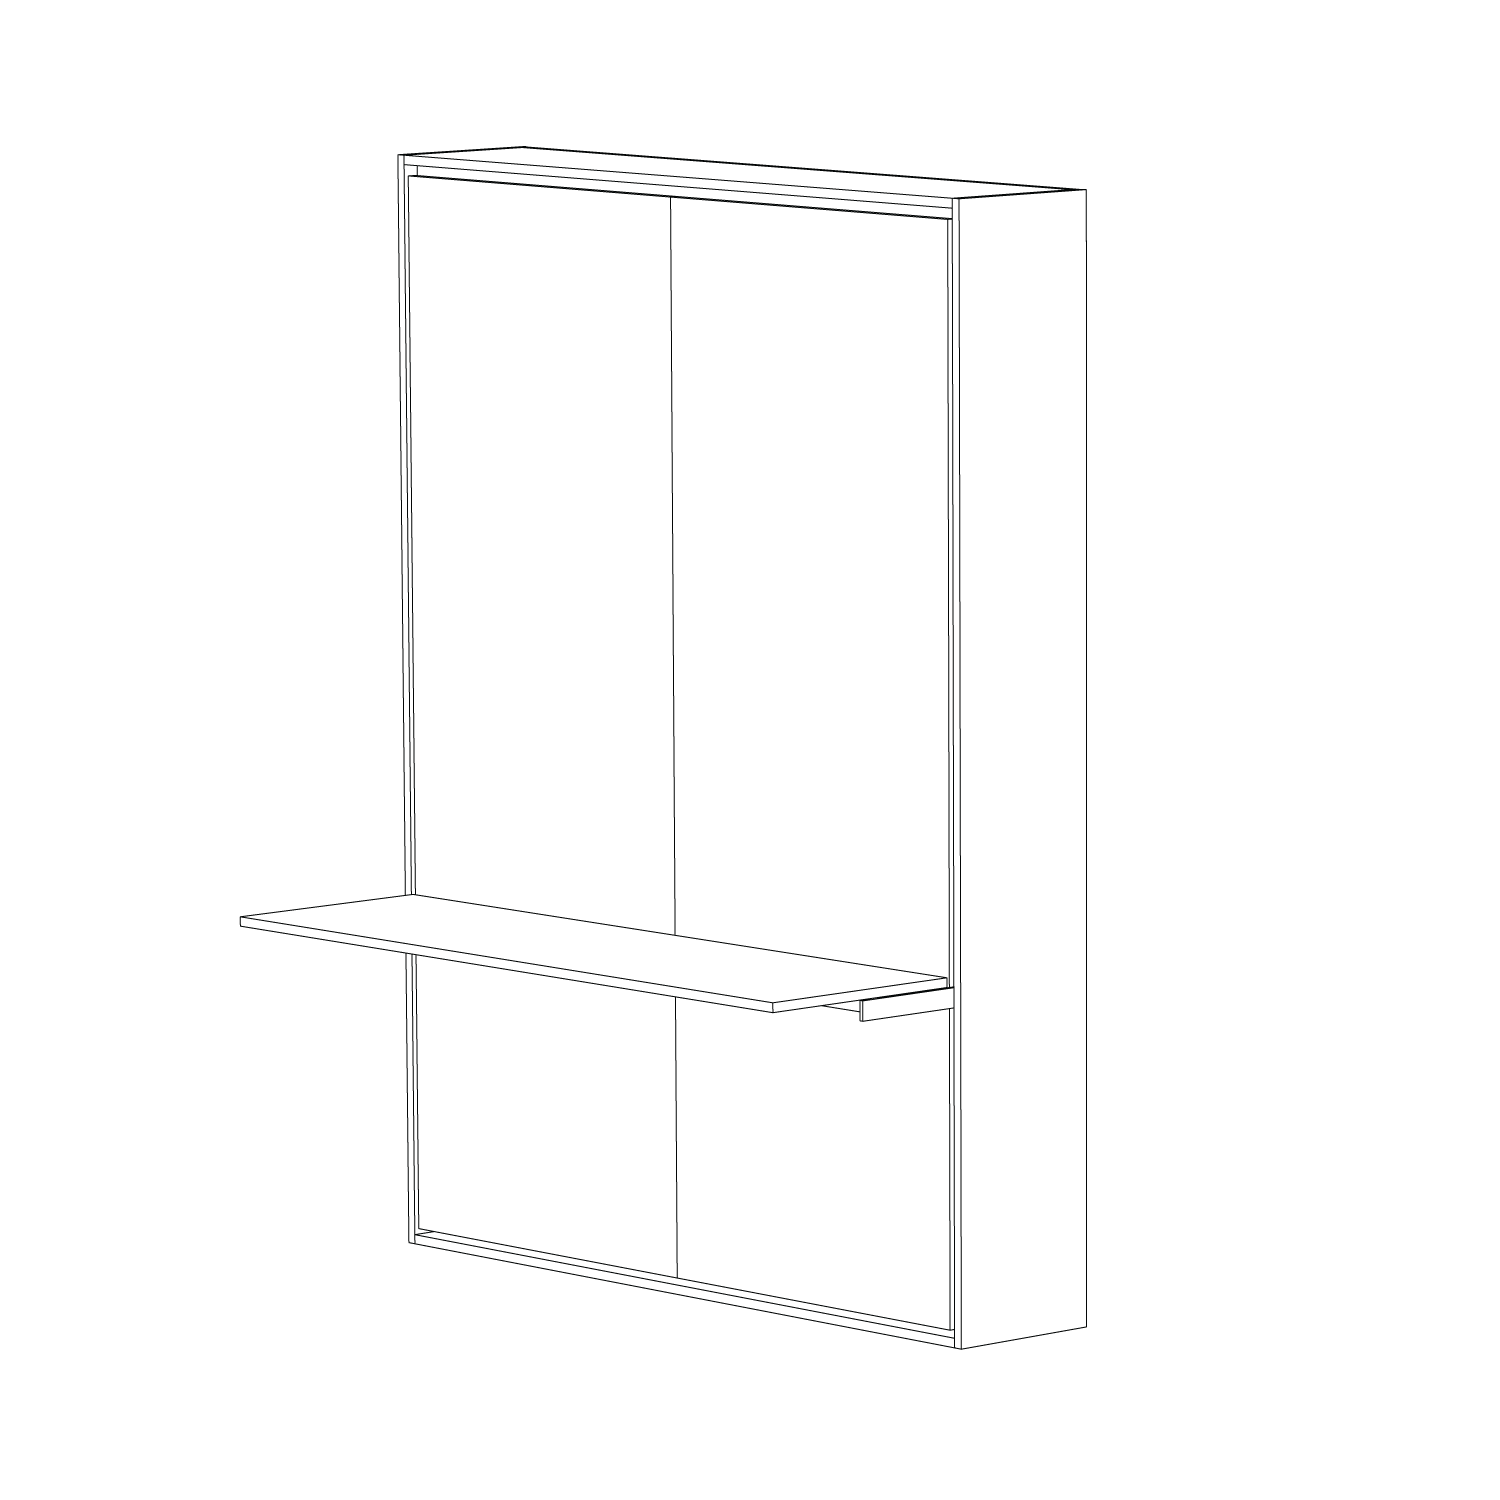 EDDY DESK (CLOSED).png